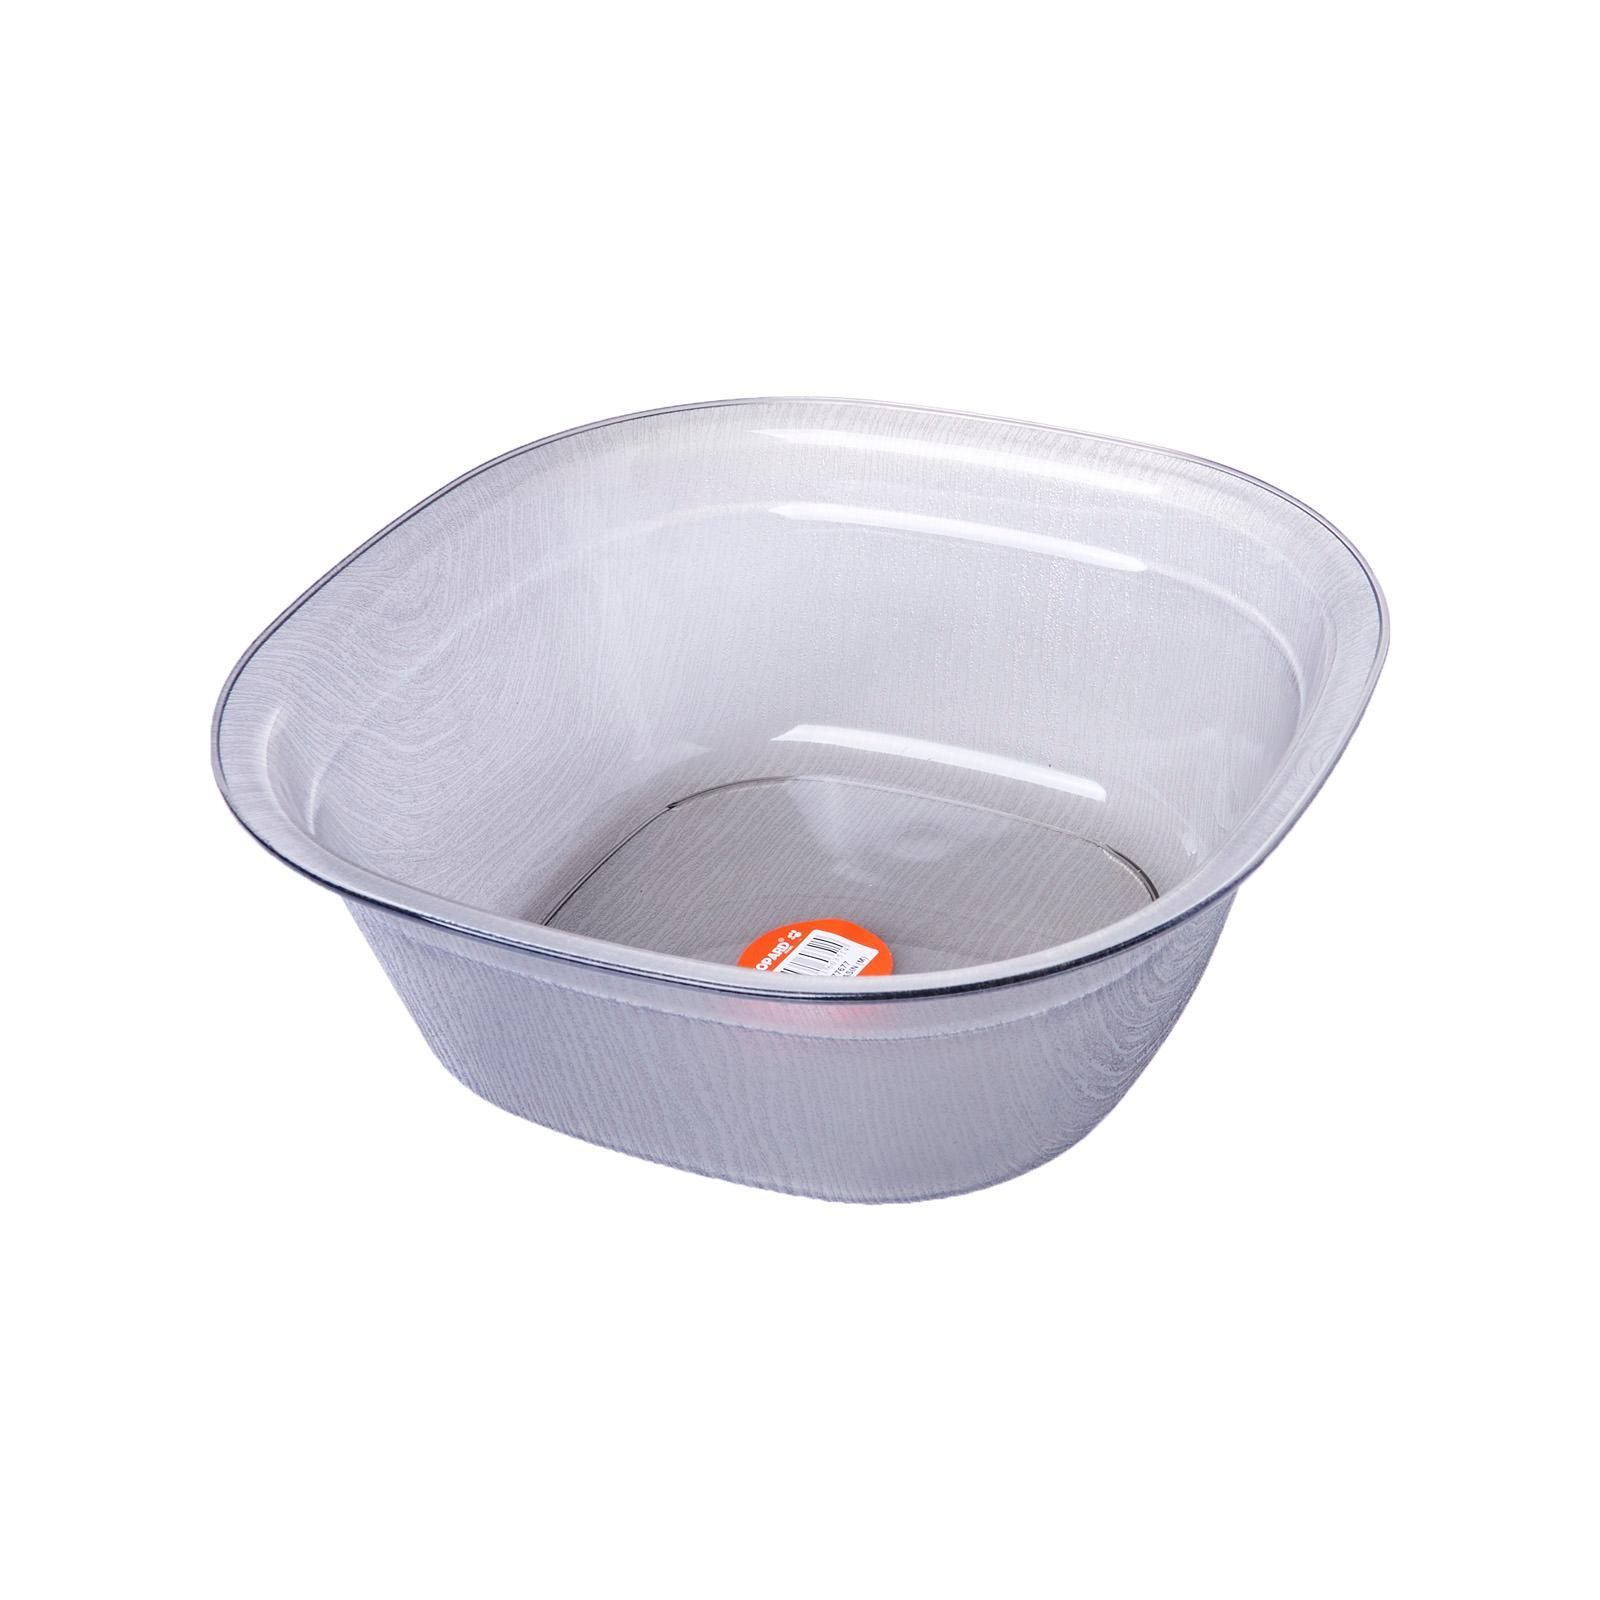 Leopard LN 77677 - Rect Basin Transparent (M) - 28.5 X 10.5 CM (Recyclable Friendly)